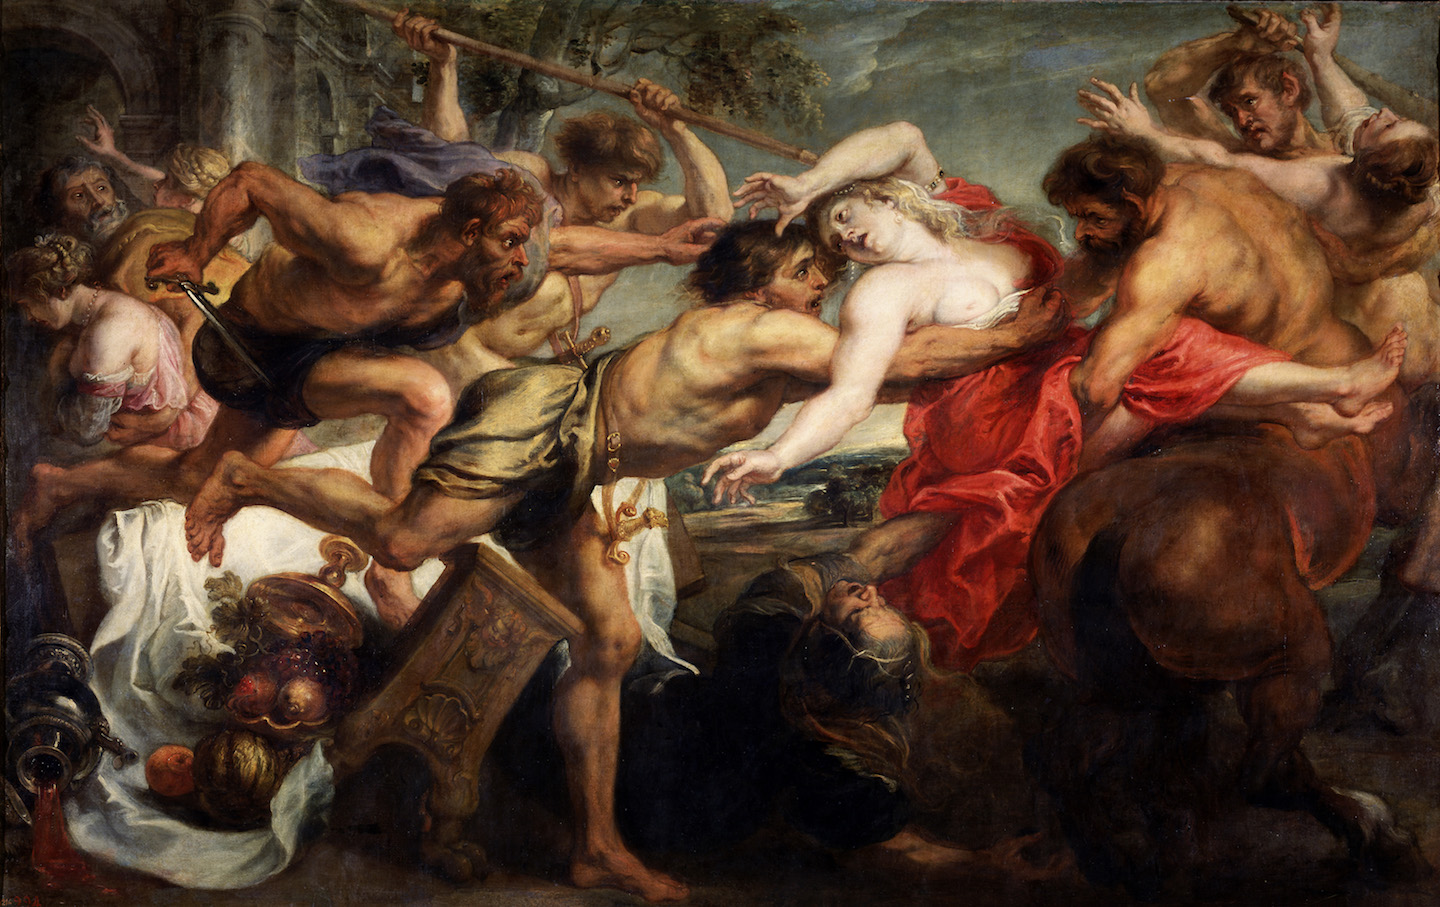 The Abduction of Hippodamia, or Lapiths and Centaurs, 1636-1638. Found in the collection of the Museo del Prado, Madrid.